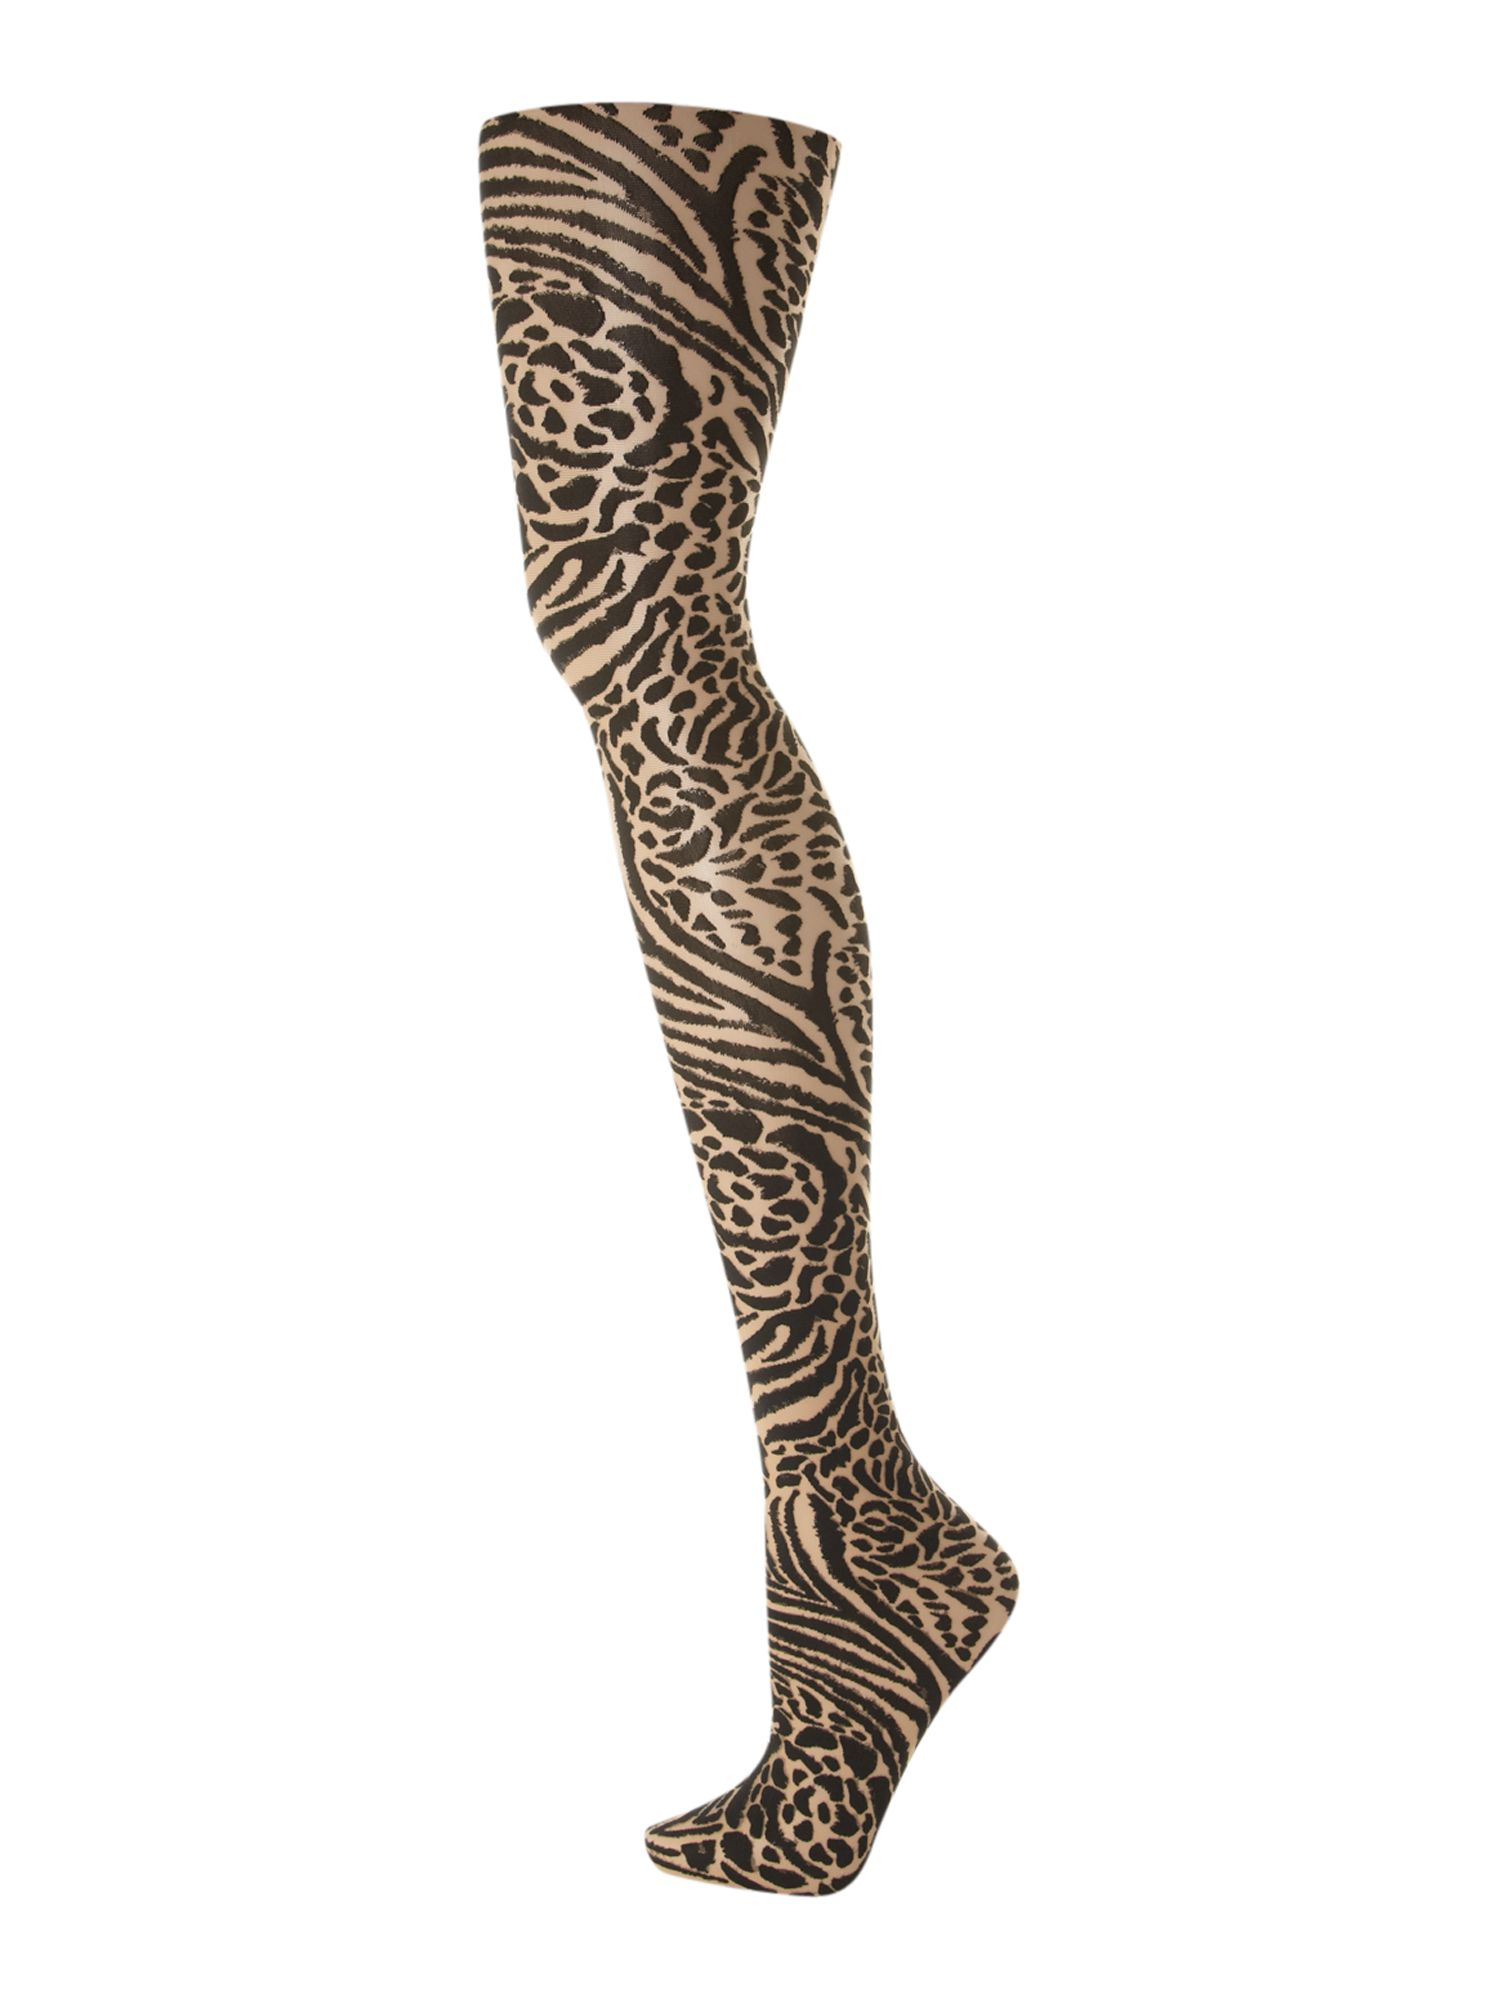 Animalia tights